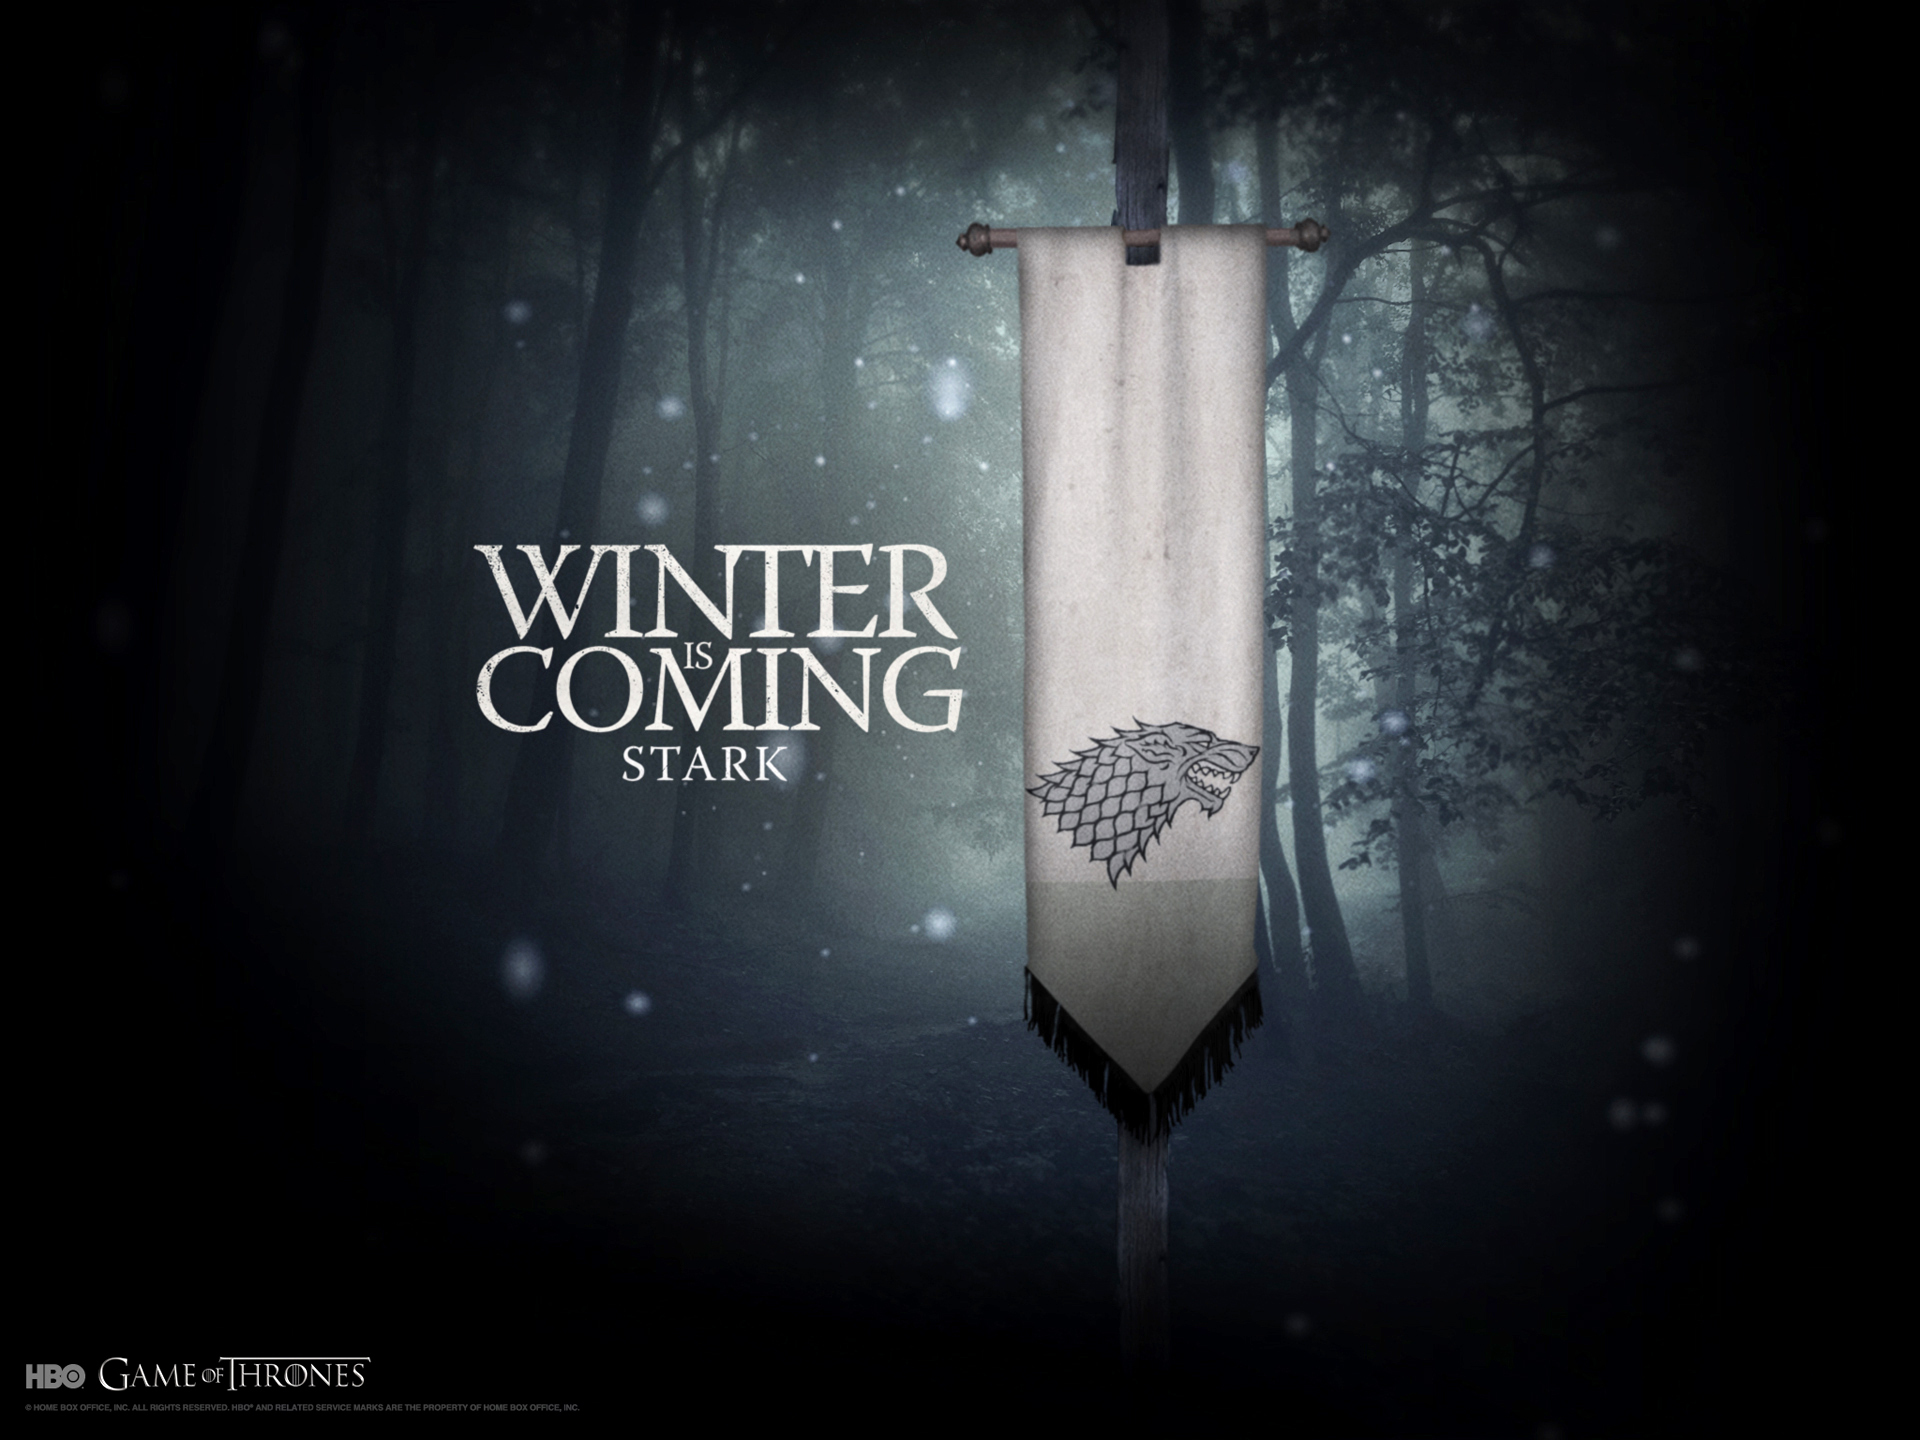 Image - Promo - Winter is Coming.jpg | Game of Thrones: Ascent Wiki on veterans emblems, the musketeers emblems, mgs4 emblems, freemasonry emblems, the last of us emblems, fire department emblems, steven universe emblems, international masons emblems, babylon 5 emblems, mario kart 8 emblems, grand theft auto v emblems, hunting emblems, lord of the rings emblems, all military emblems, secret society emblems, custom chrome emblems, marine raiders emblems, rubicon emblems, ns emblems, csi customer satisfaction emblems,